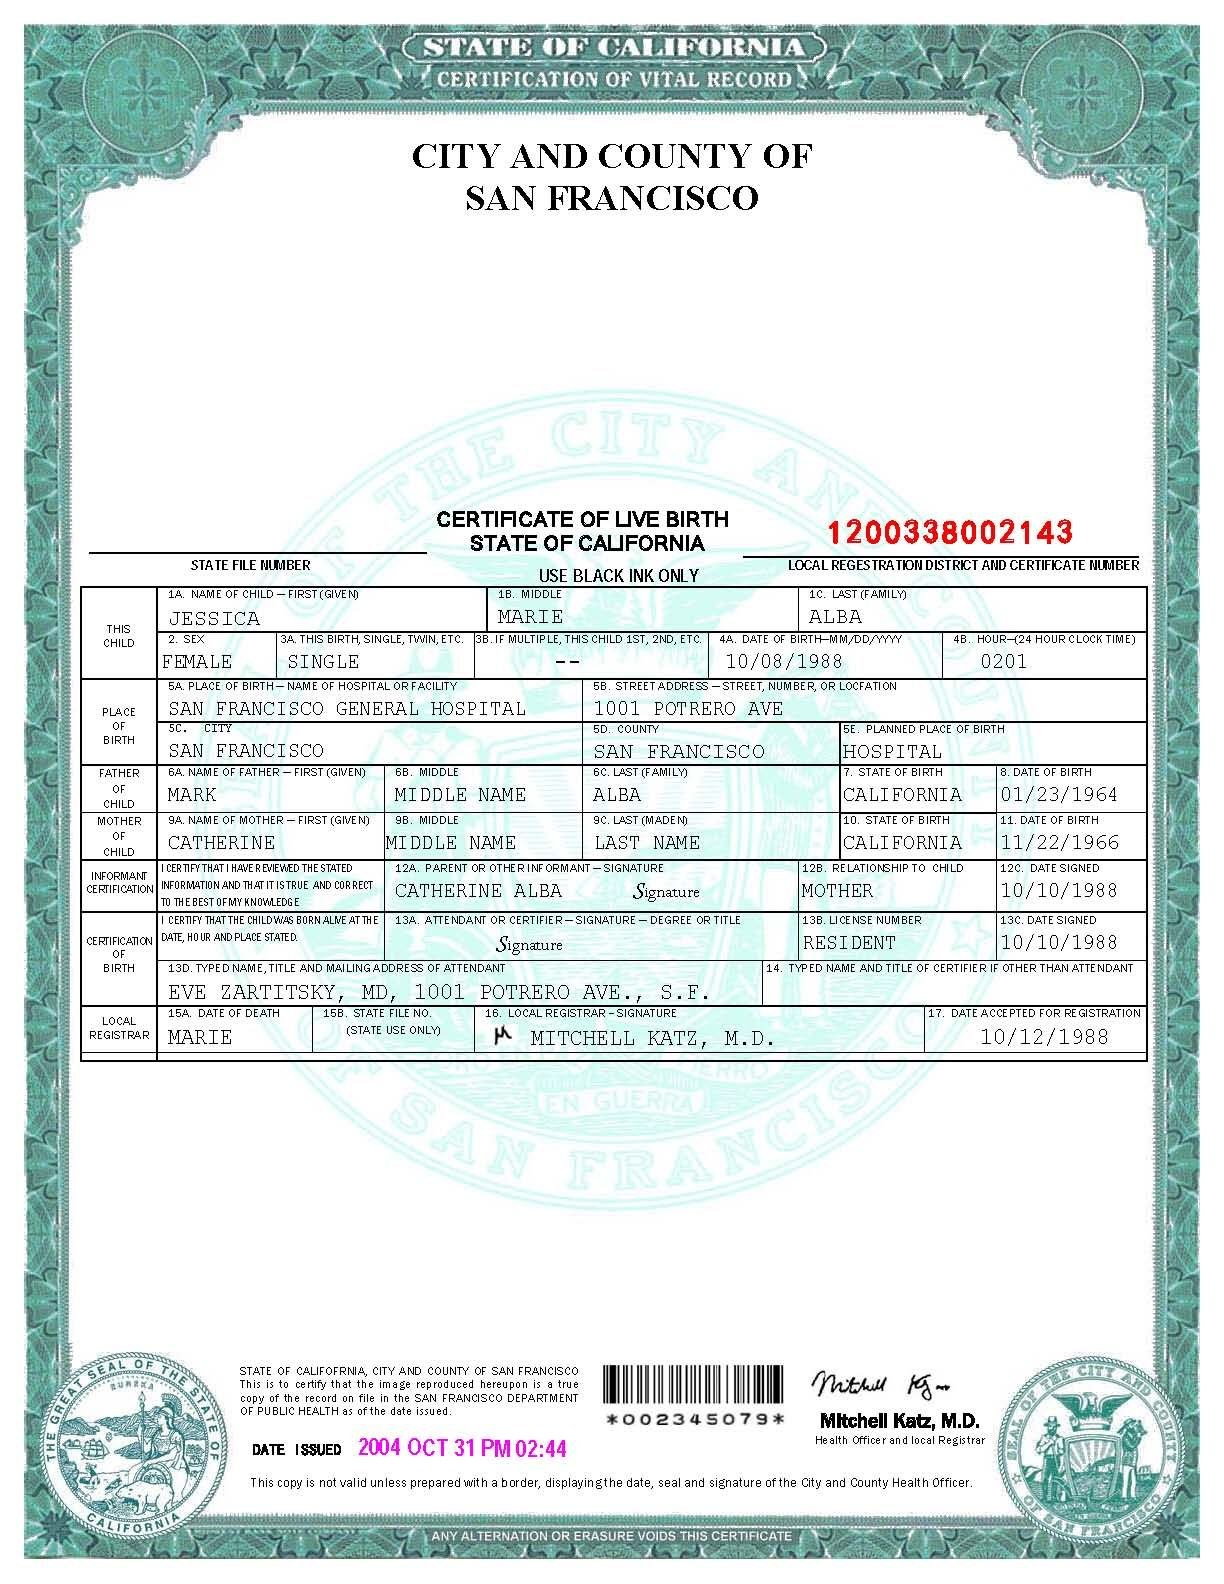 San Francisco Birth Certificate Template  Bah  Birth Certificate Inside Fake Birth Certificate Template